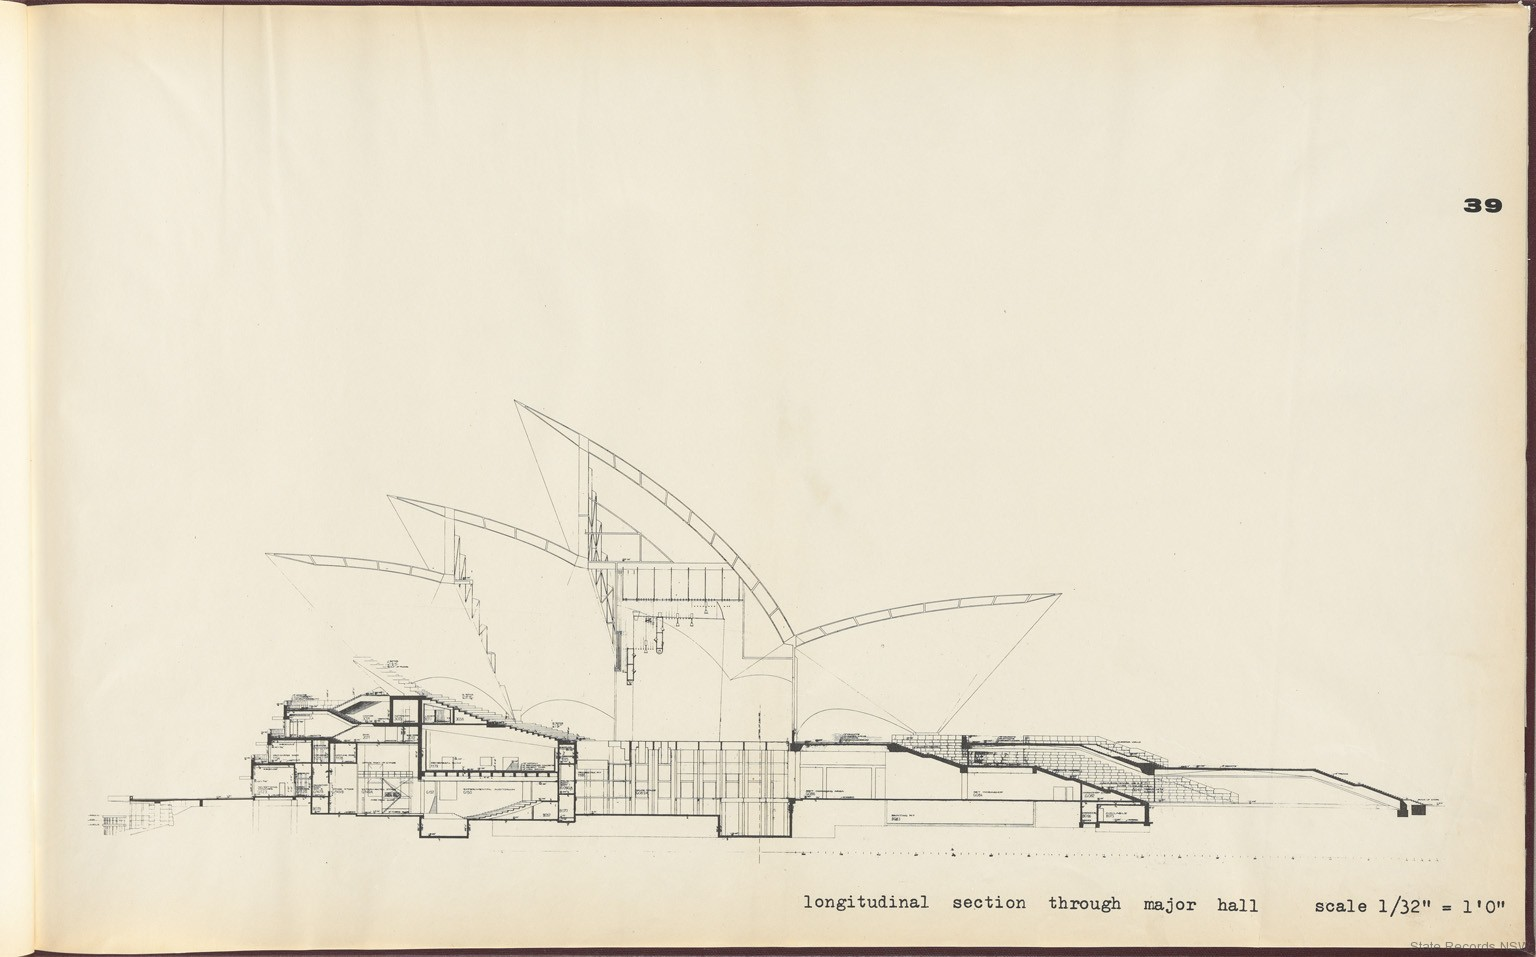 39. Longitudinal section through major hall. Sydney Opera House - Yellow Book. NRS 12708